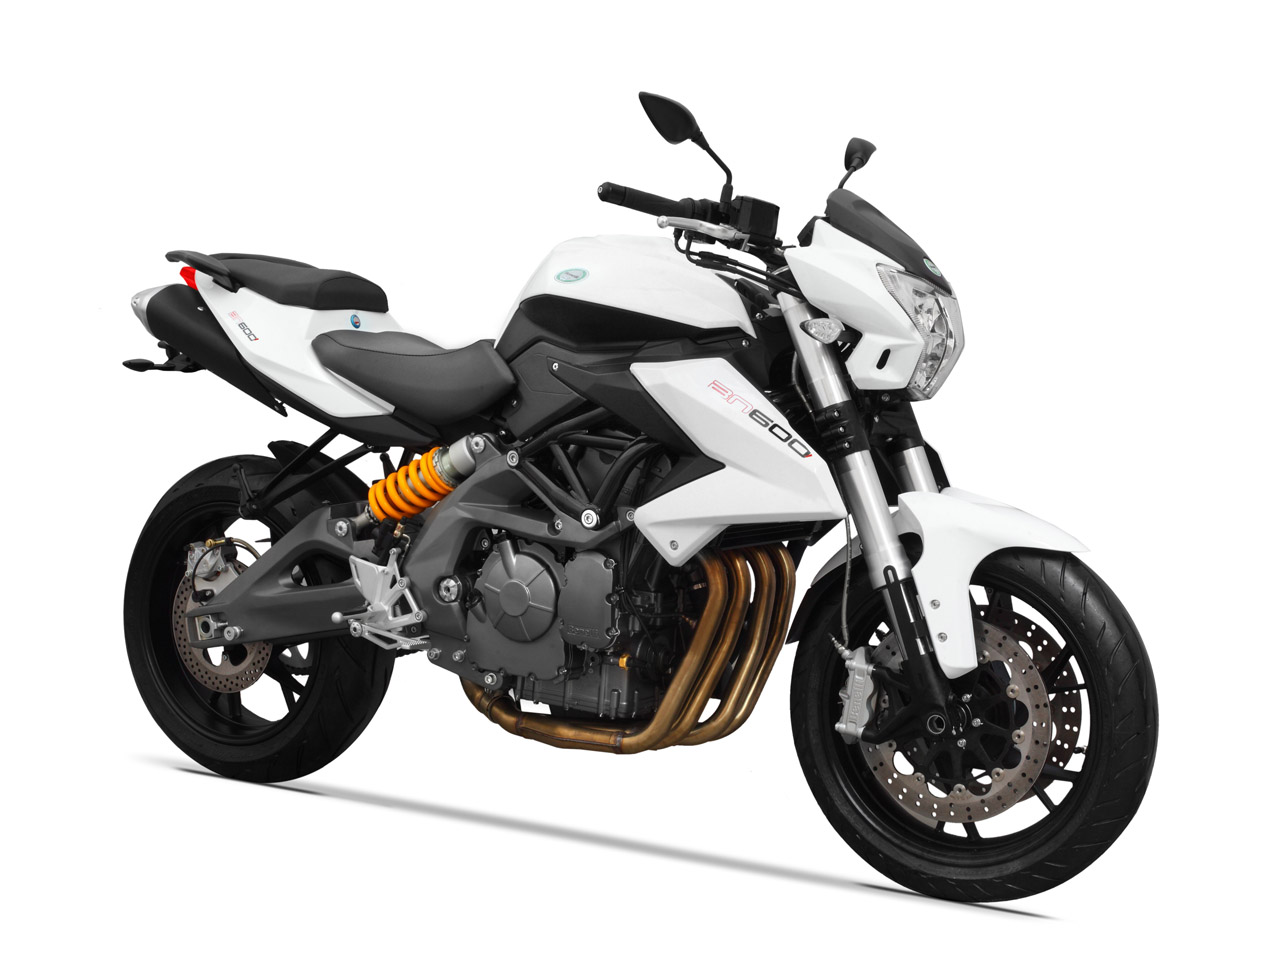 2014 Benelli BN600I Pictures, Photos, Wallpapers.